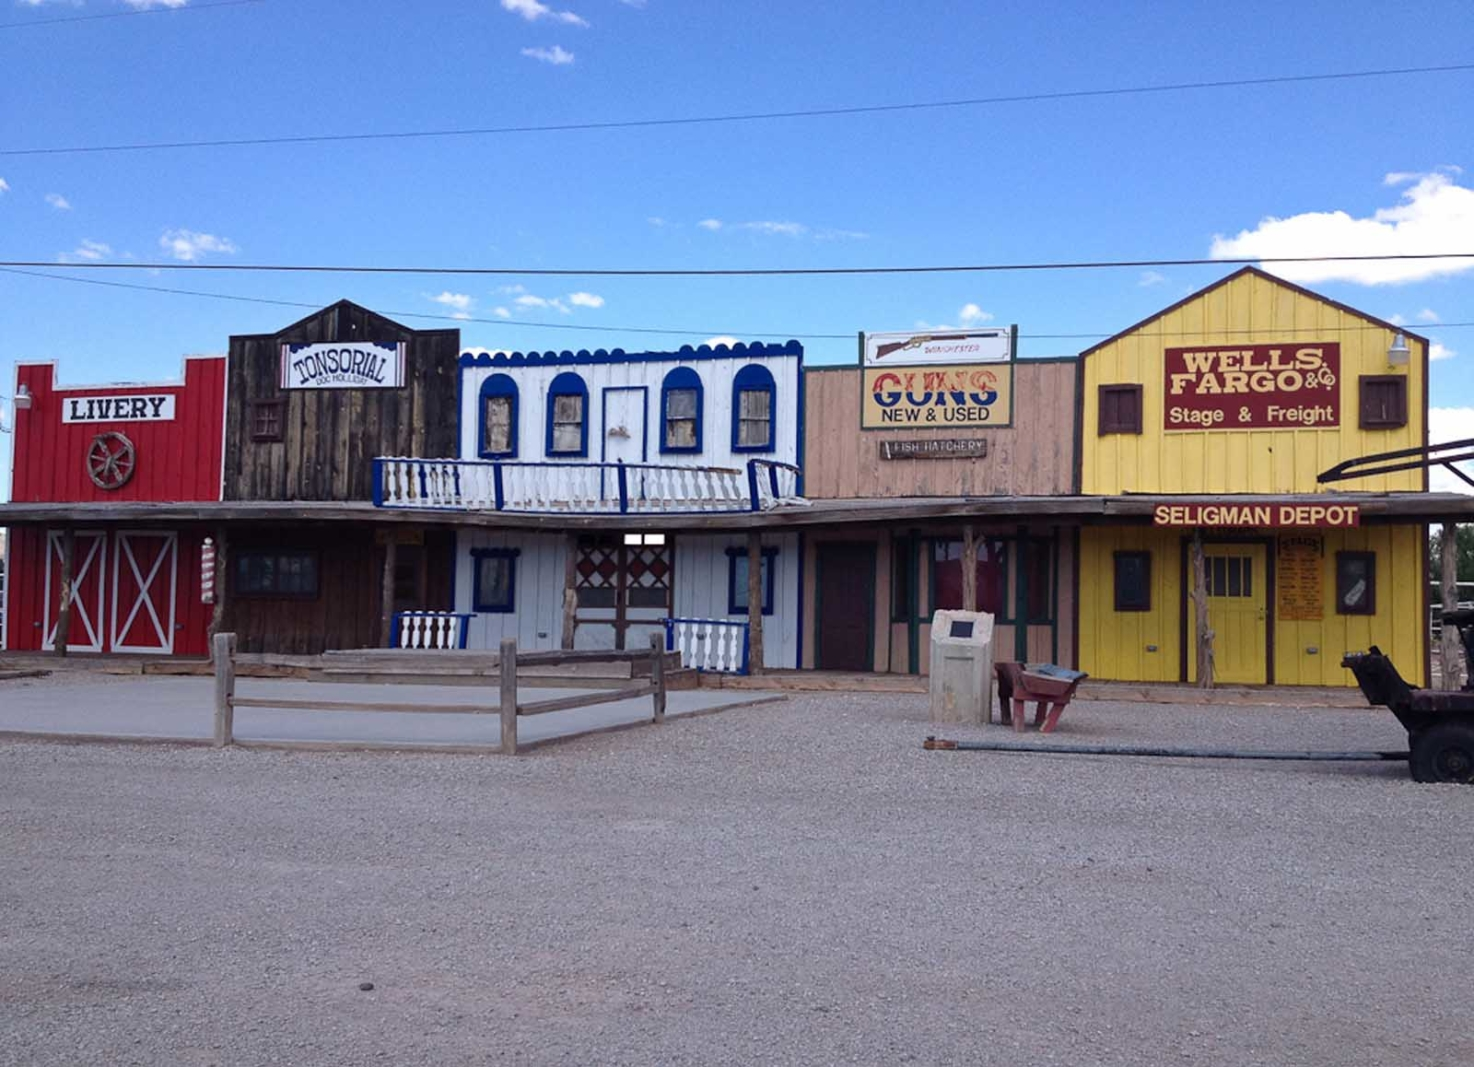 wells fargo and old town facades in arizona